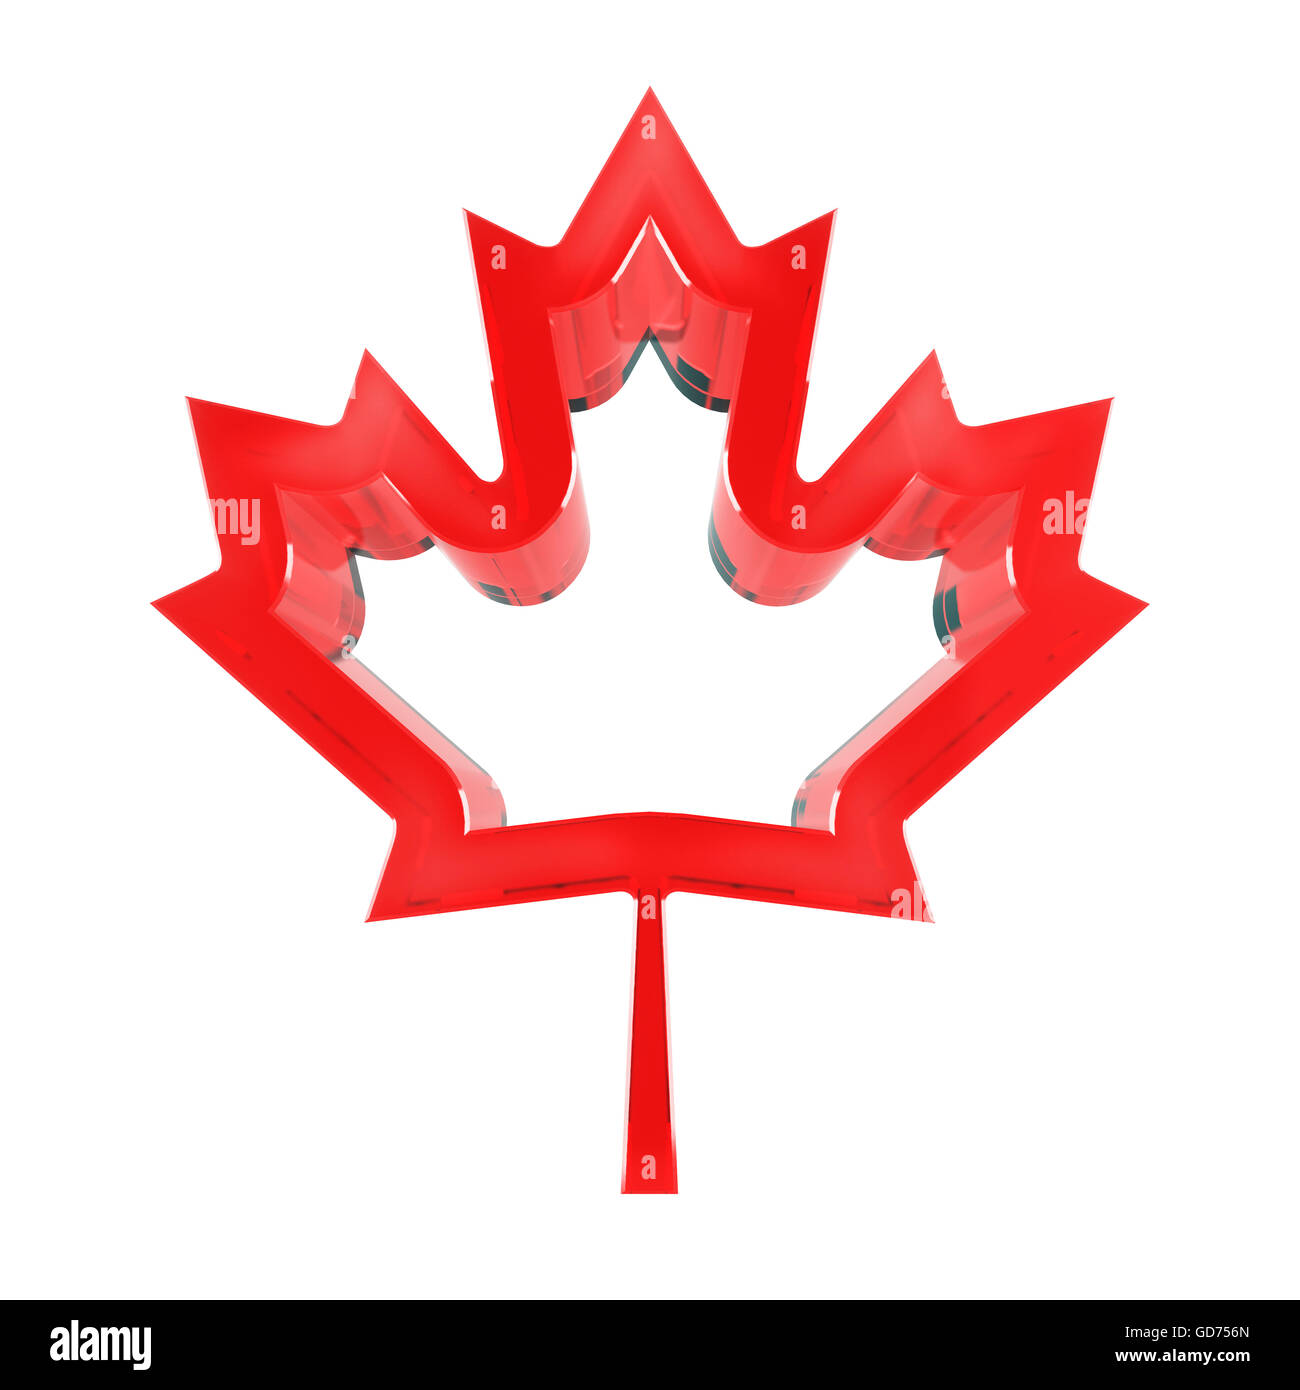 3d Maple Leaf Canadian Symbol Stock Photos 3d Maple Leaf Canadian